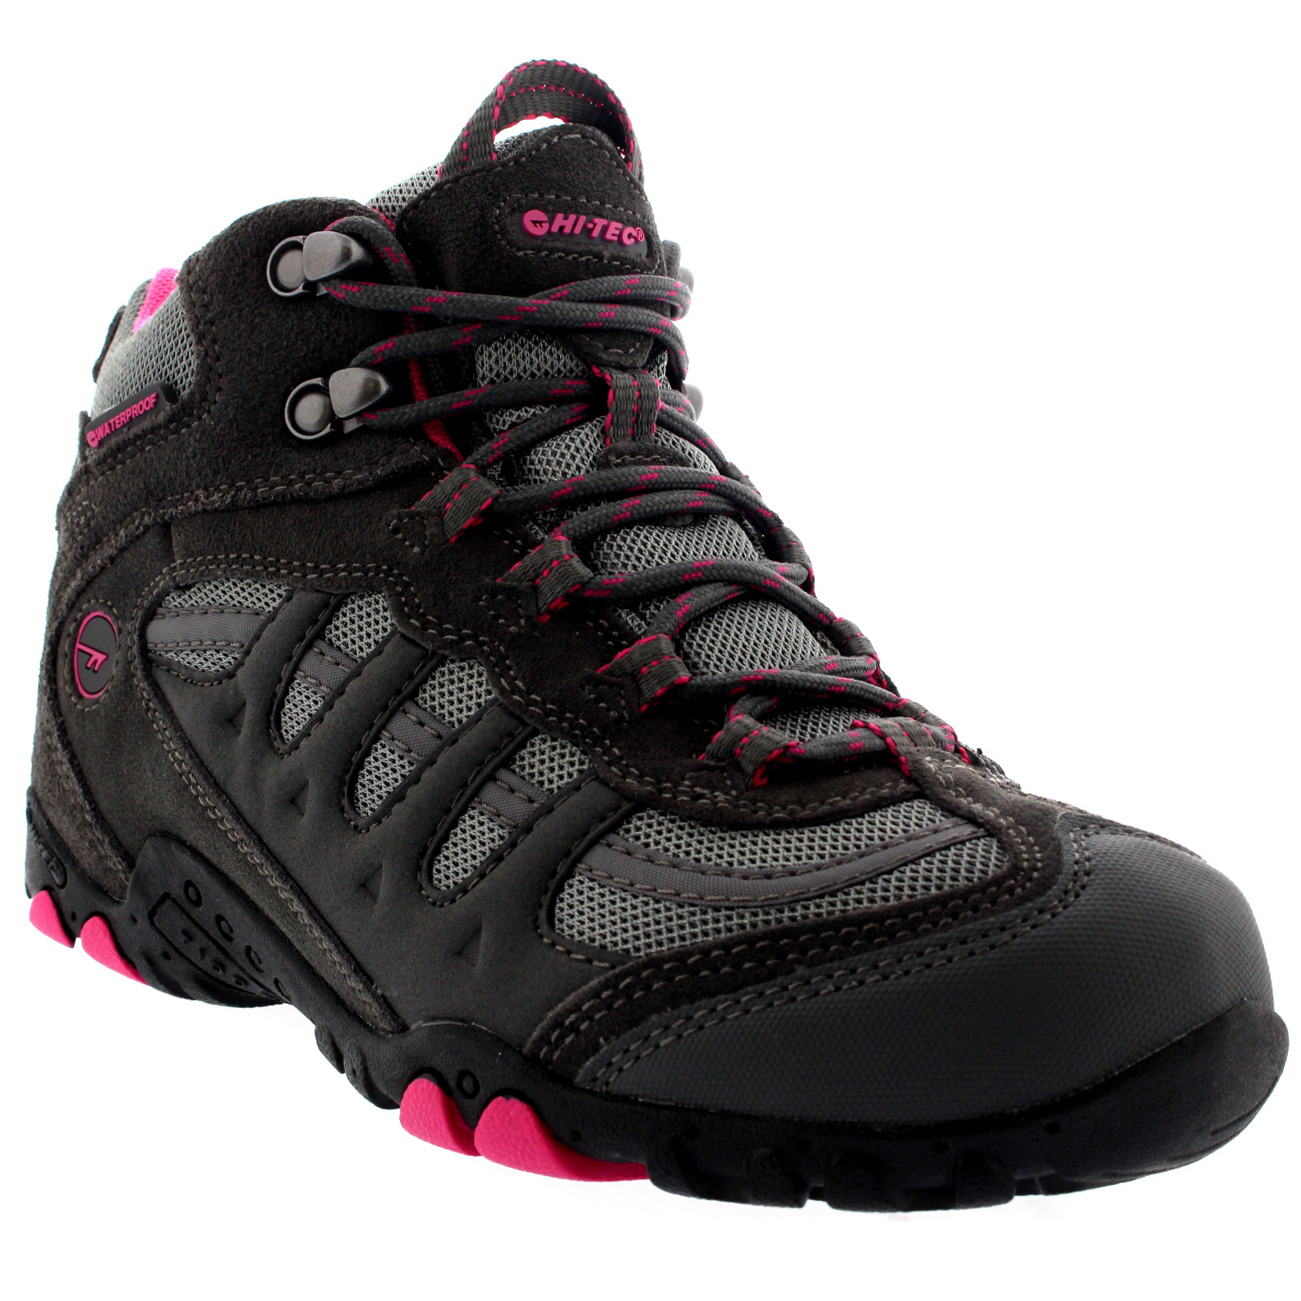 Brilliant Merrell Fluorecein Mid Waterproof Hiking Boot - Womenu0026#39;s | Backcountry.com